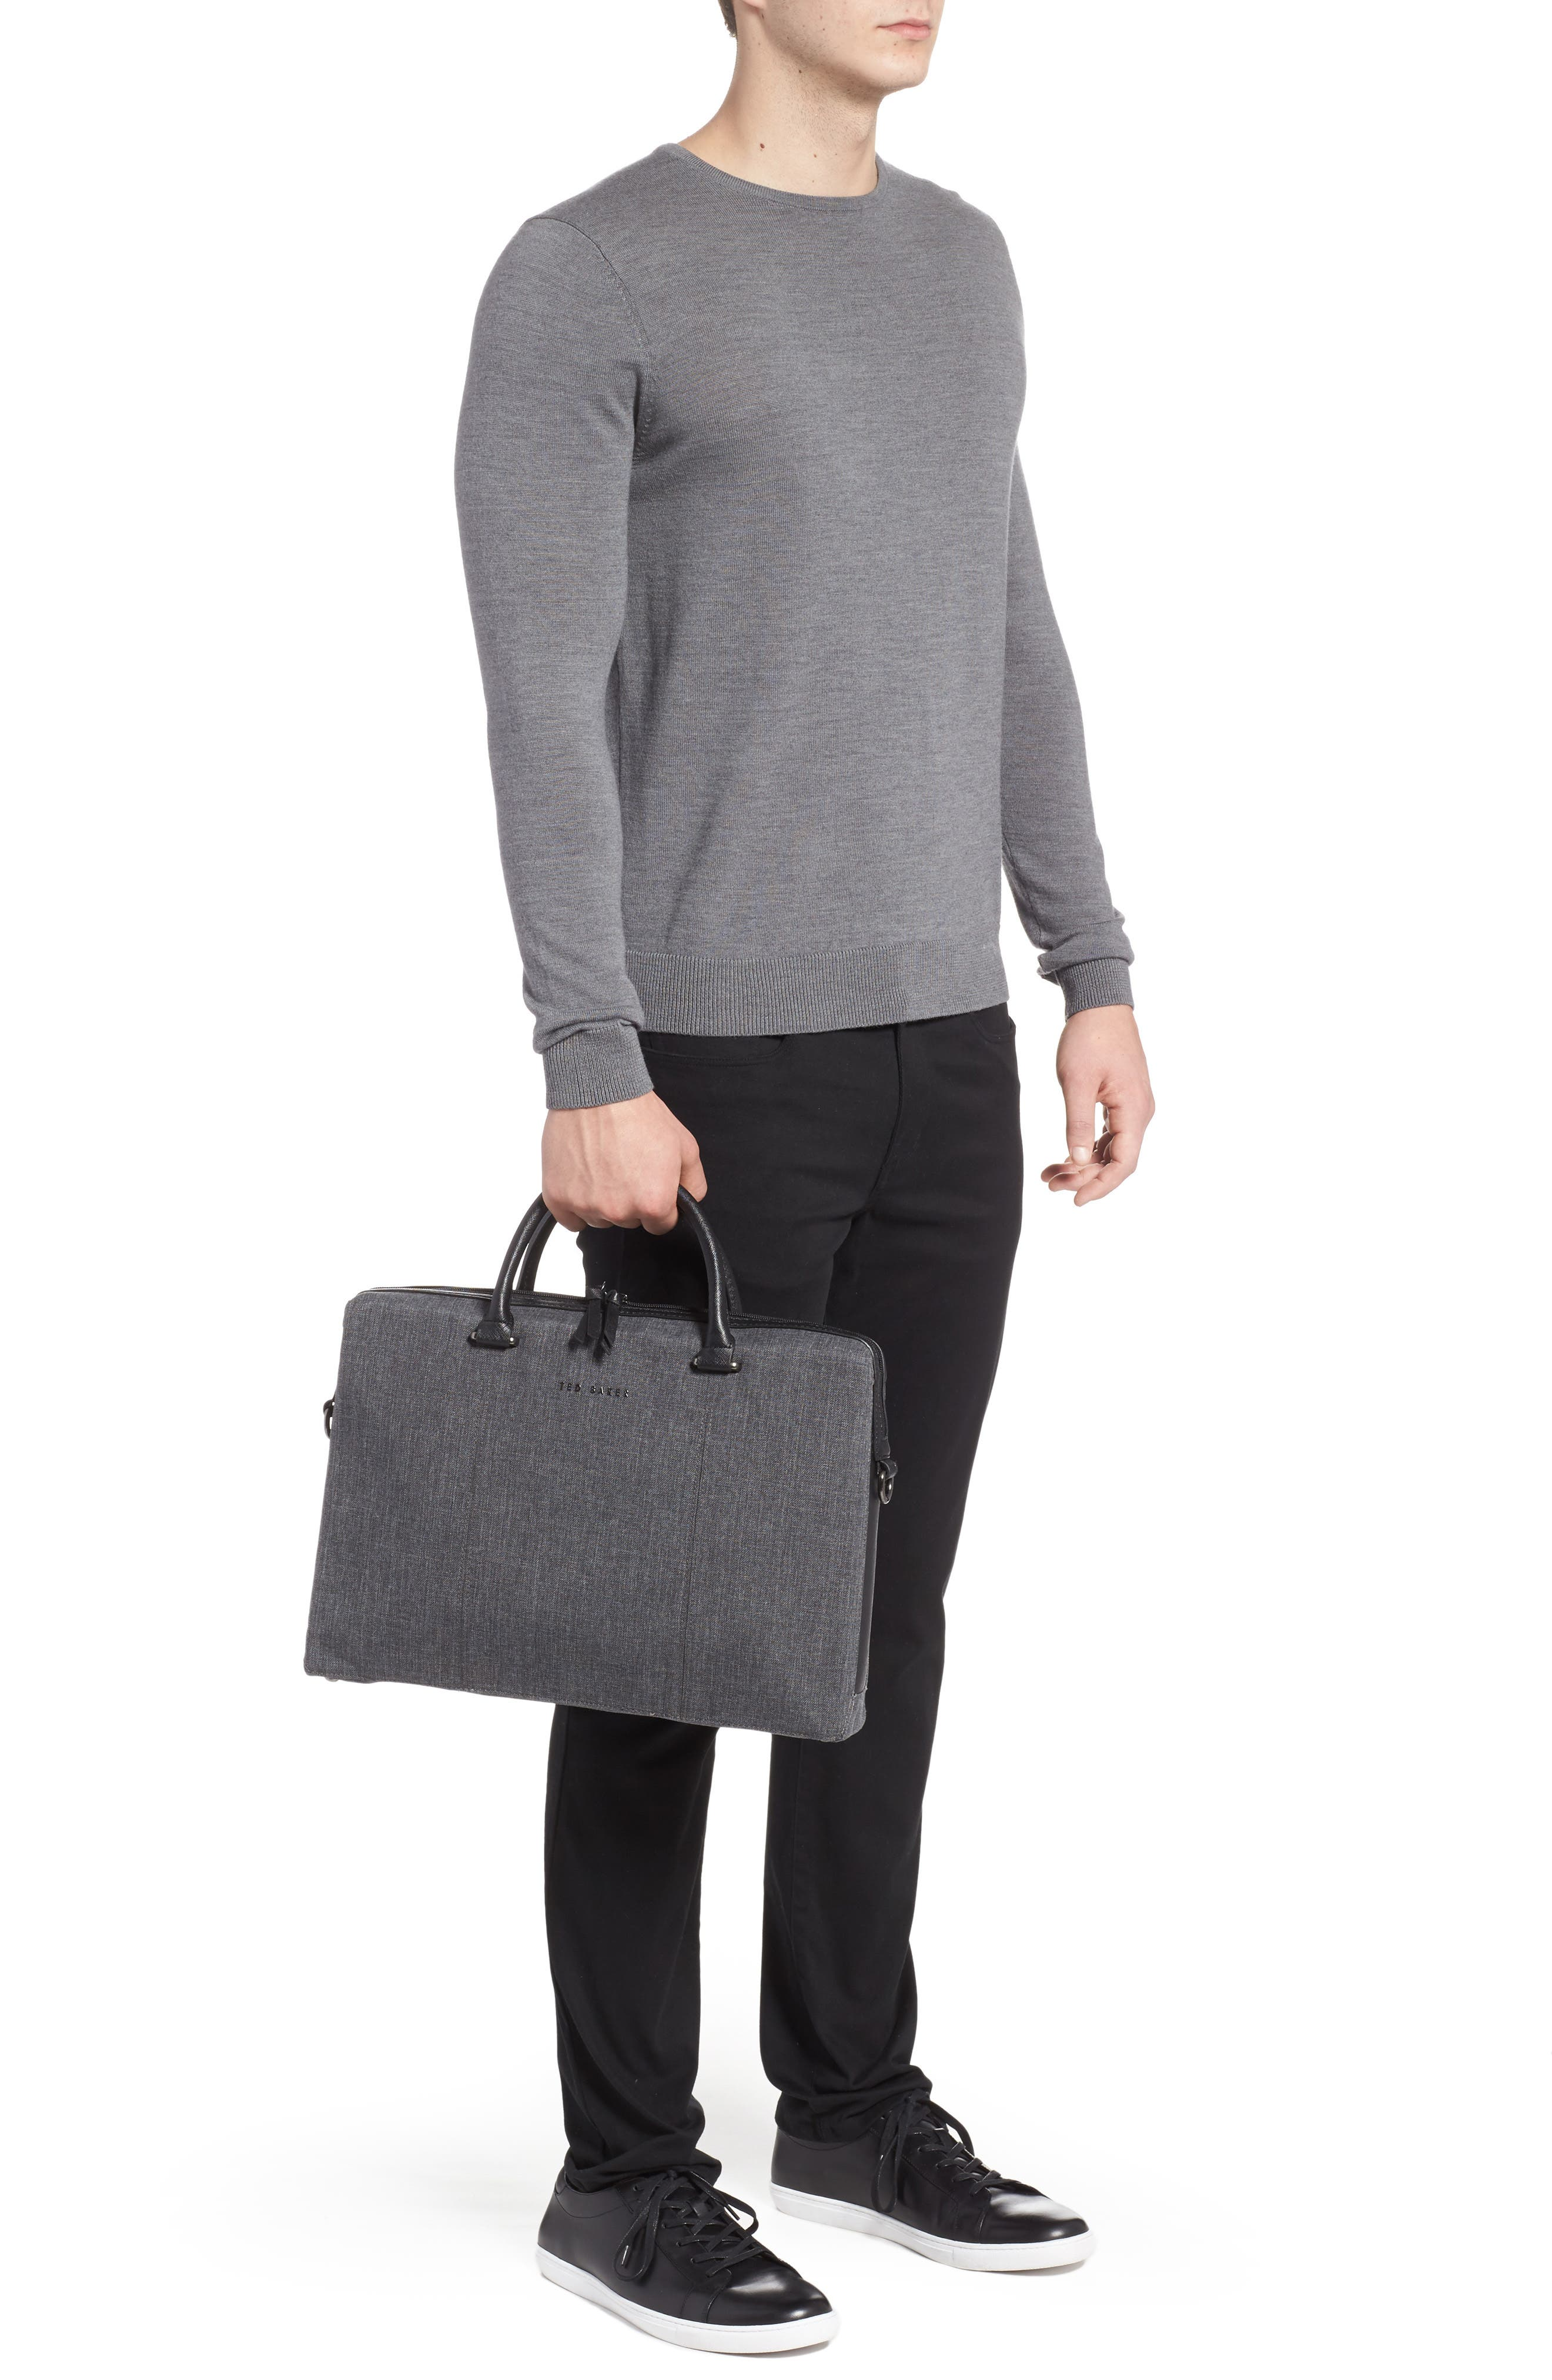 TED BAKER LONDON,                             Citrice Document Briefcase,                             Alternate thumbnail 2, color,                             CHARCOAL